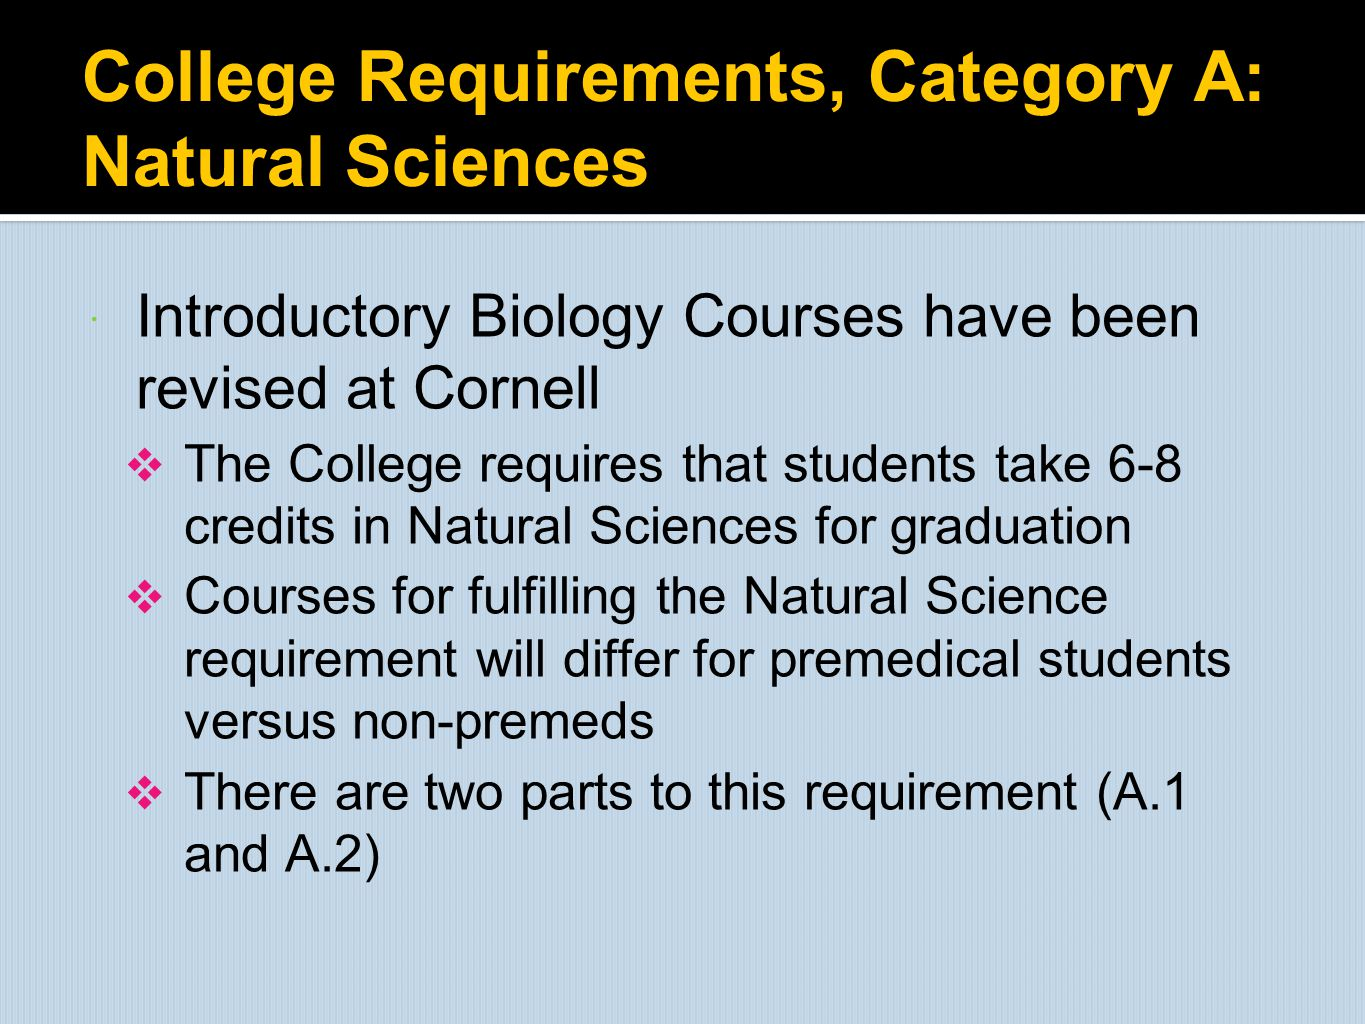 College Requirements, Category A: Natural Sciences